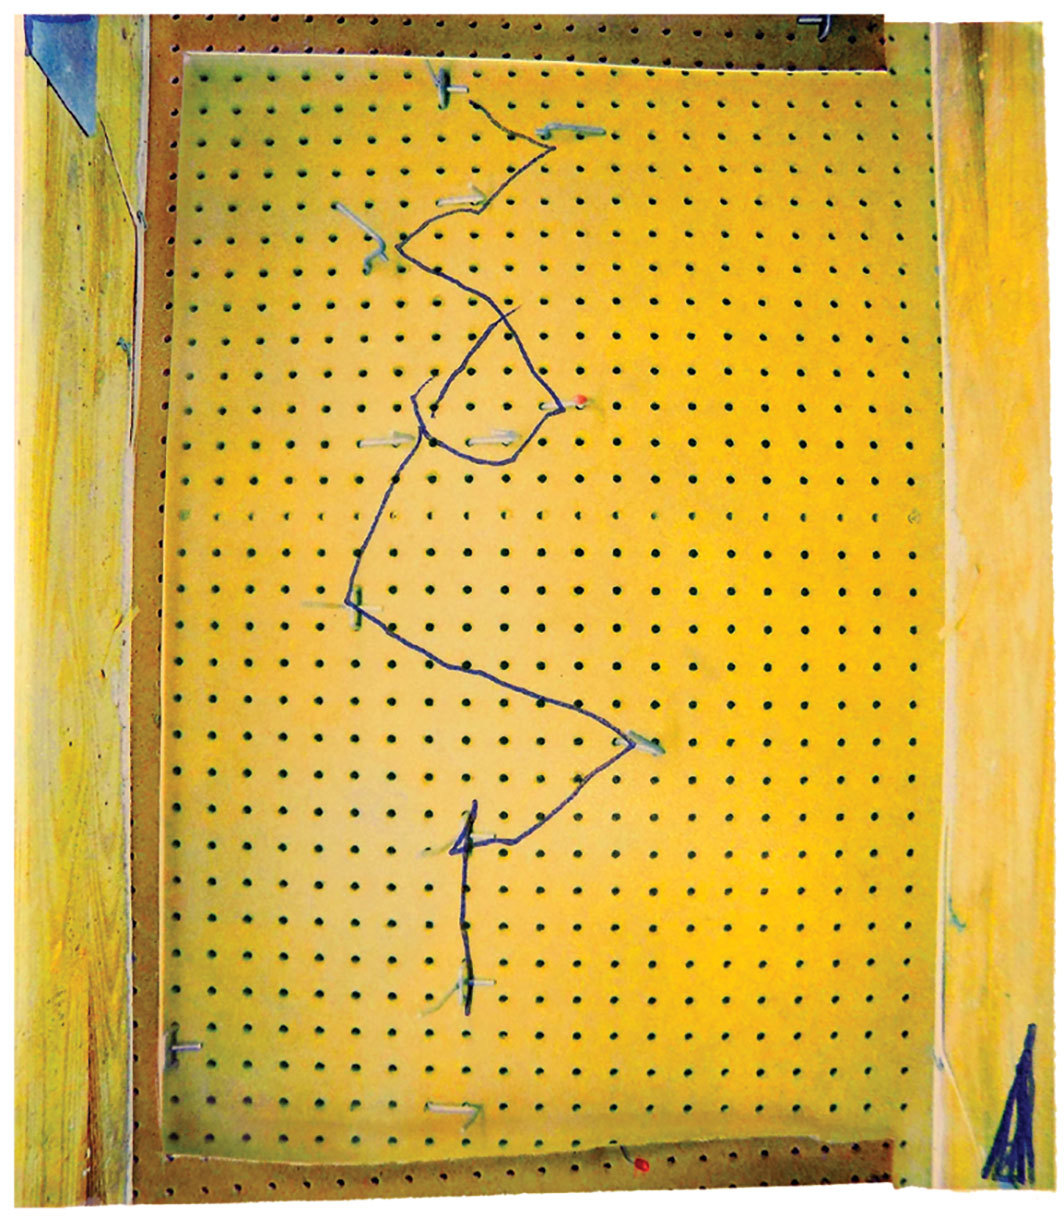 "Gerald Slota, Untitled (Pegboard), 2018, digital C-print, 44 × 37 1⁄2""."